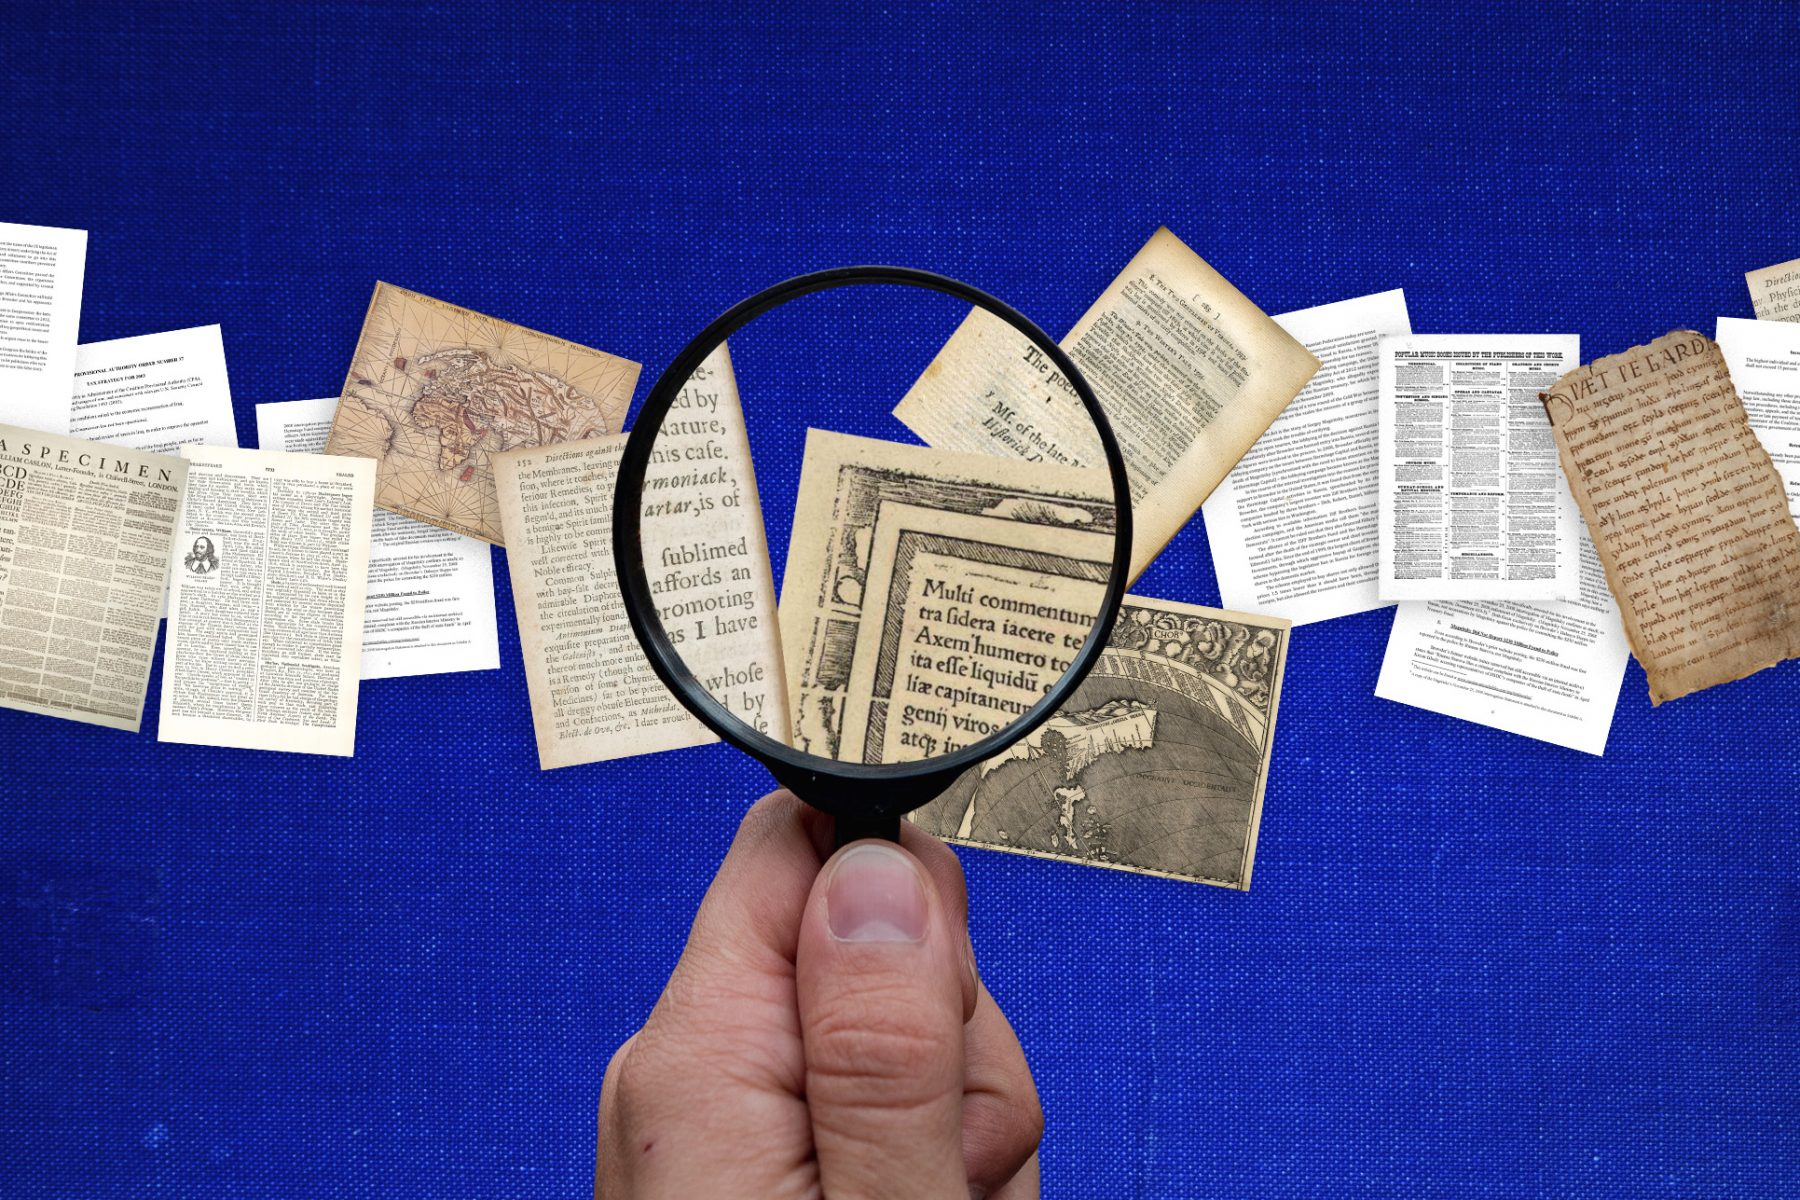 A hand holding a magnifying glass looking at pages with different fonts